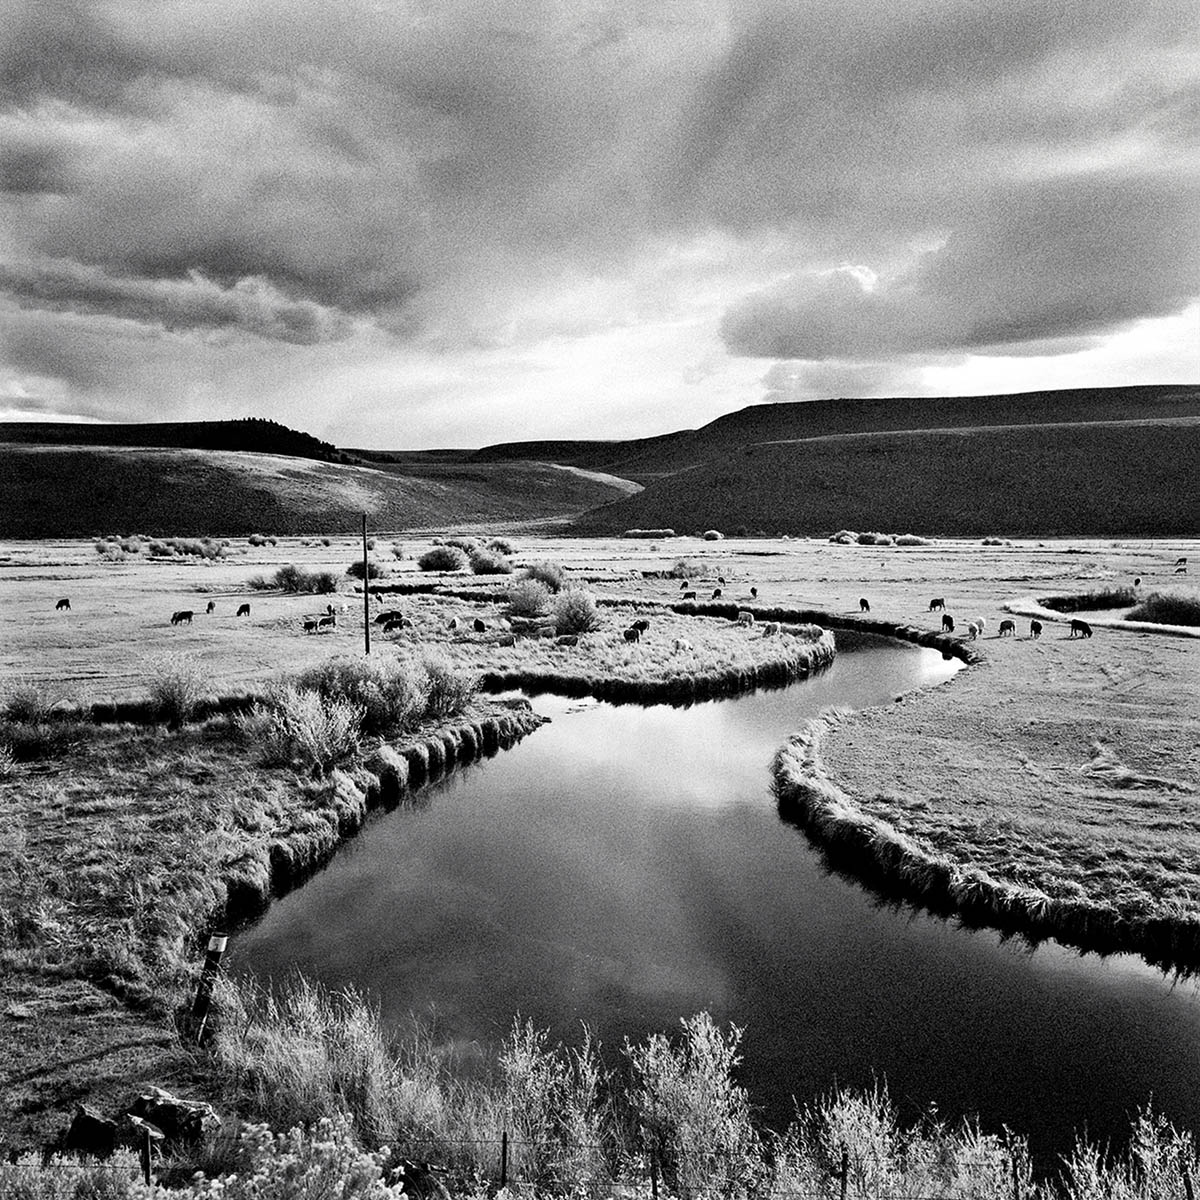 Gunnison River, Colorado, 1997